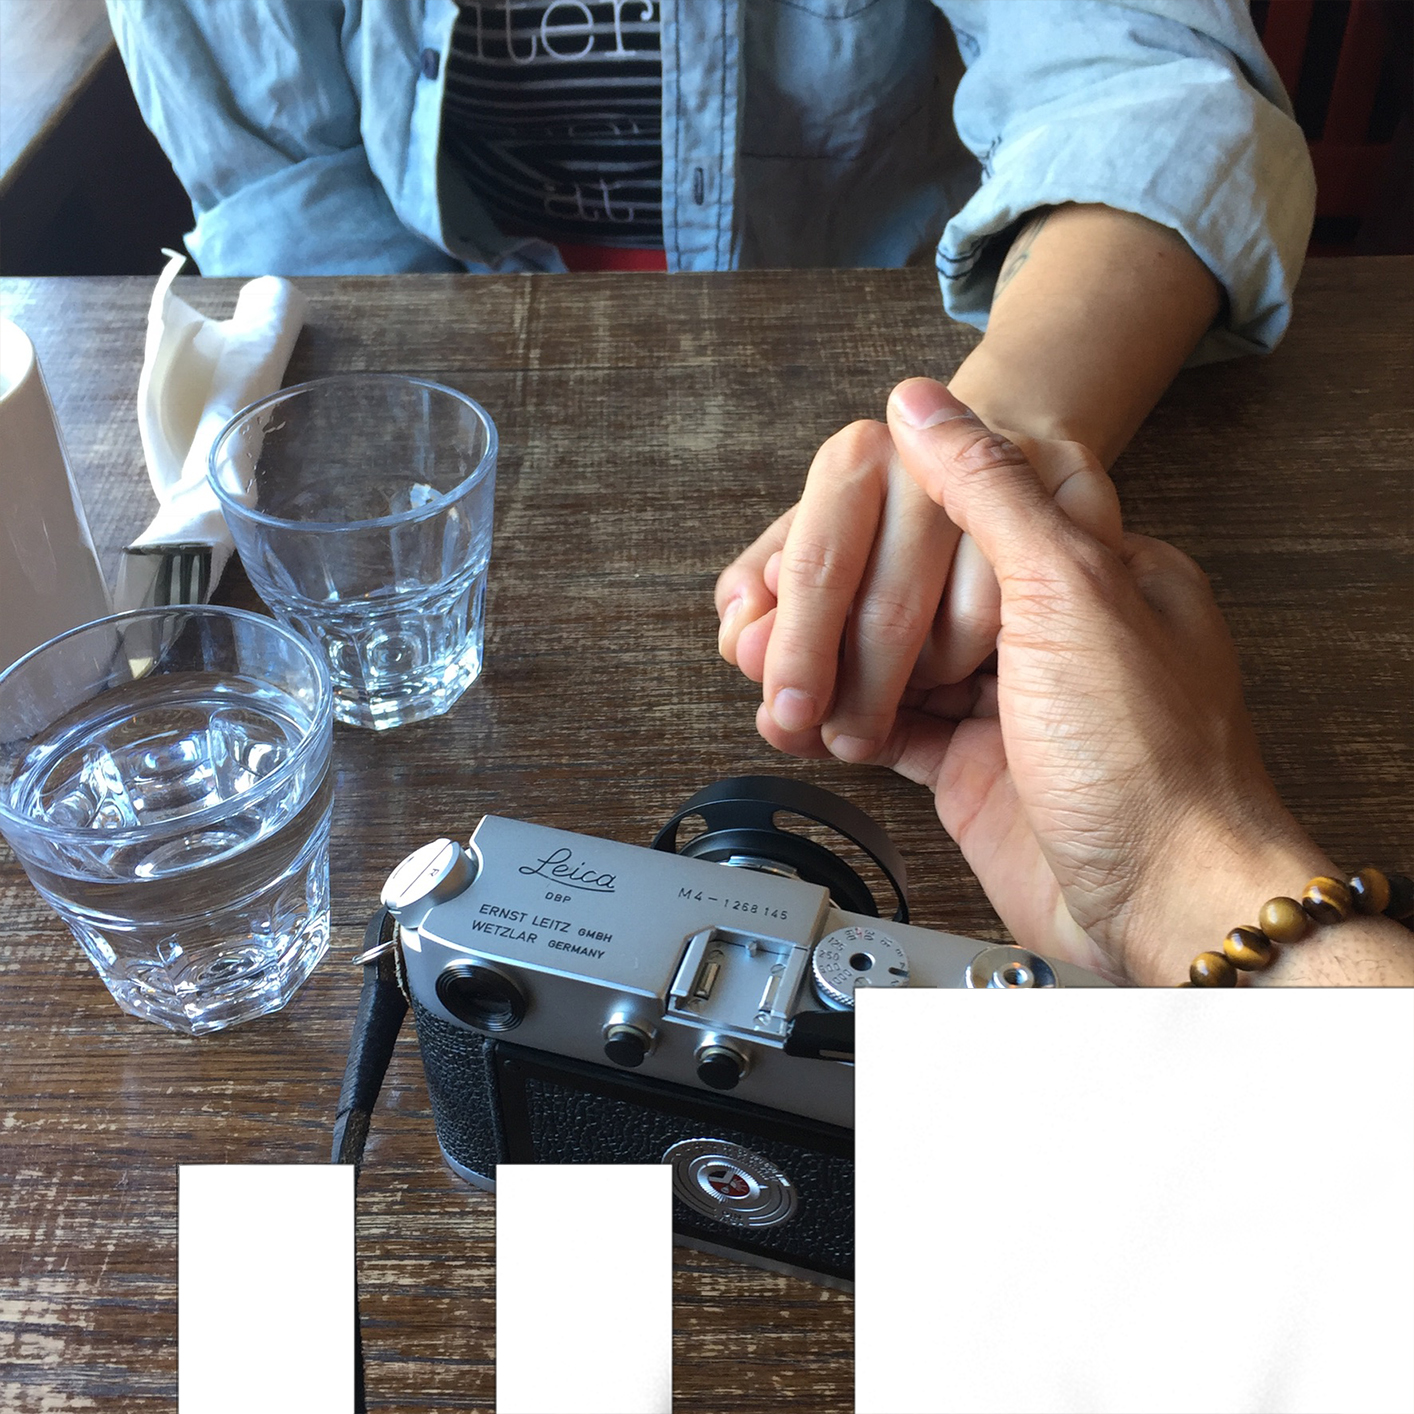 Bridge Over Troubled Water photo of two people at a table on holding the other's hand. a camera on drinking glasses and cutlery are on the table. in the photo.